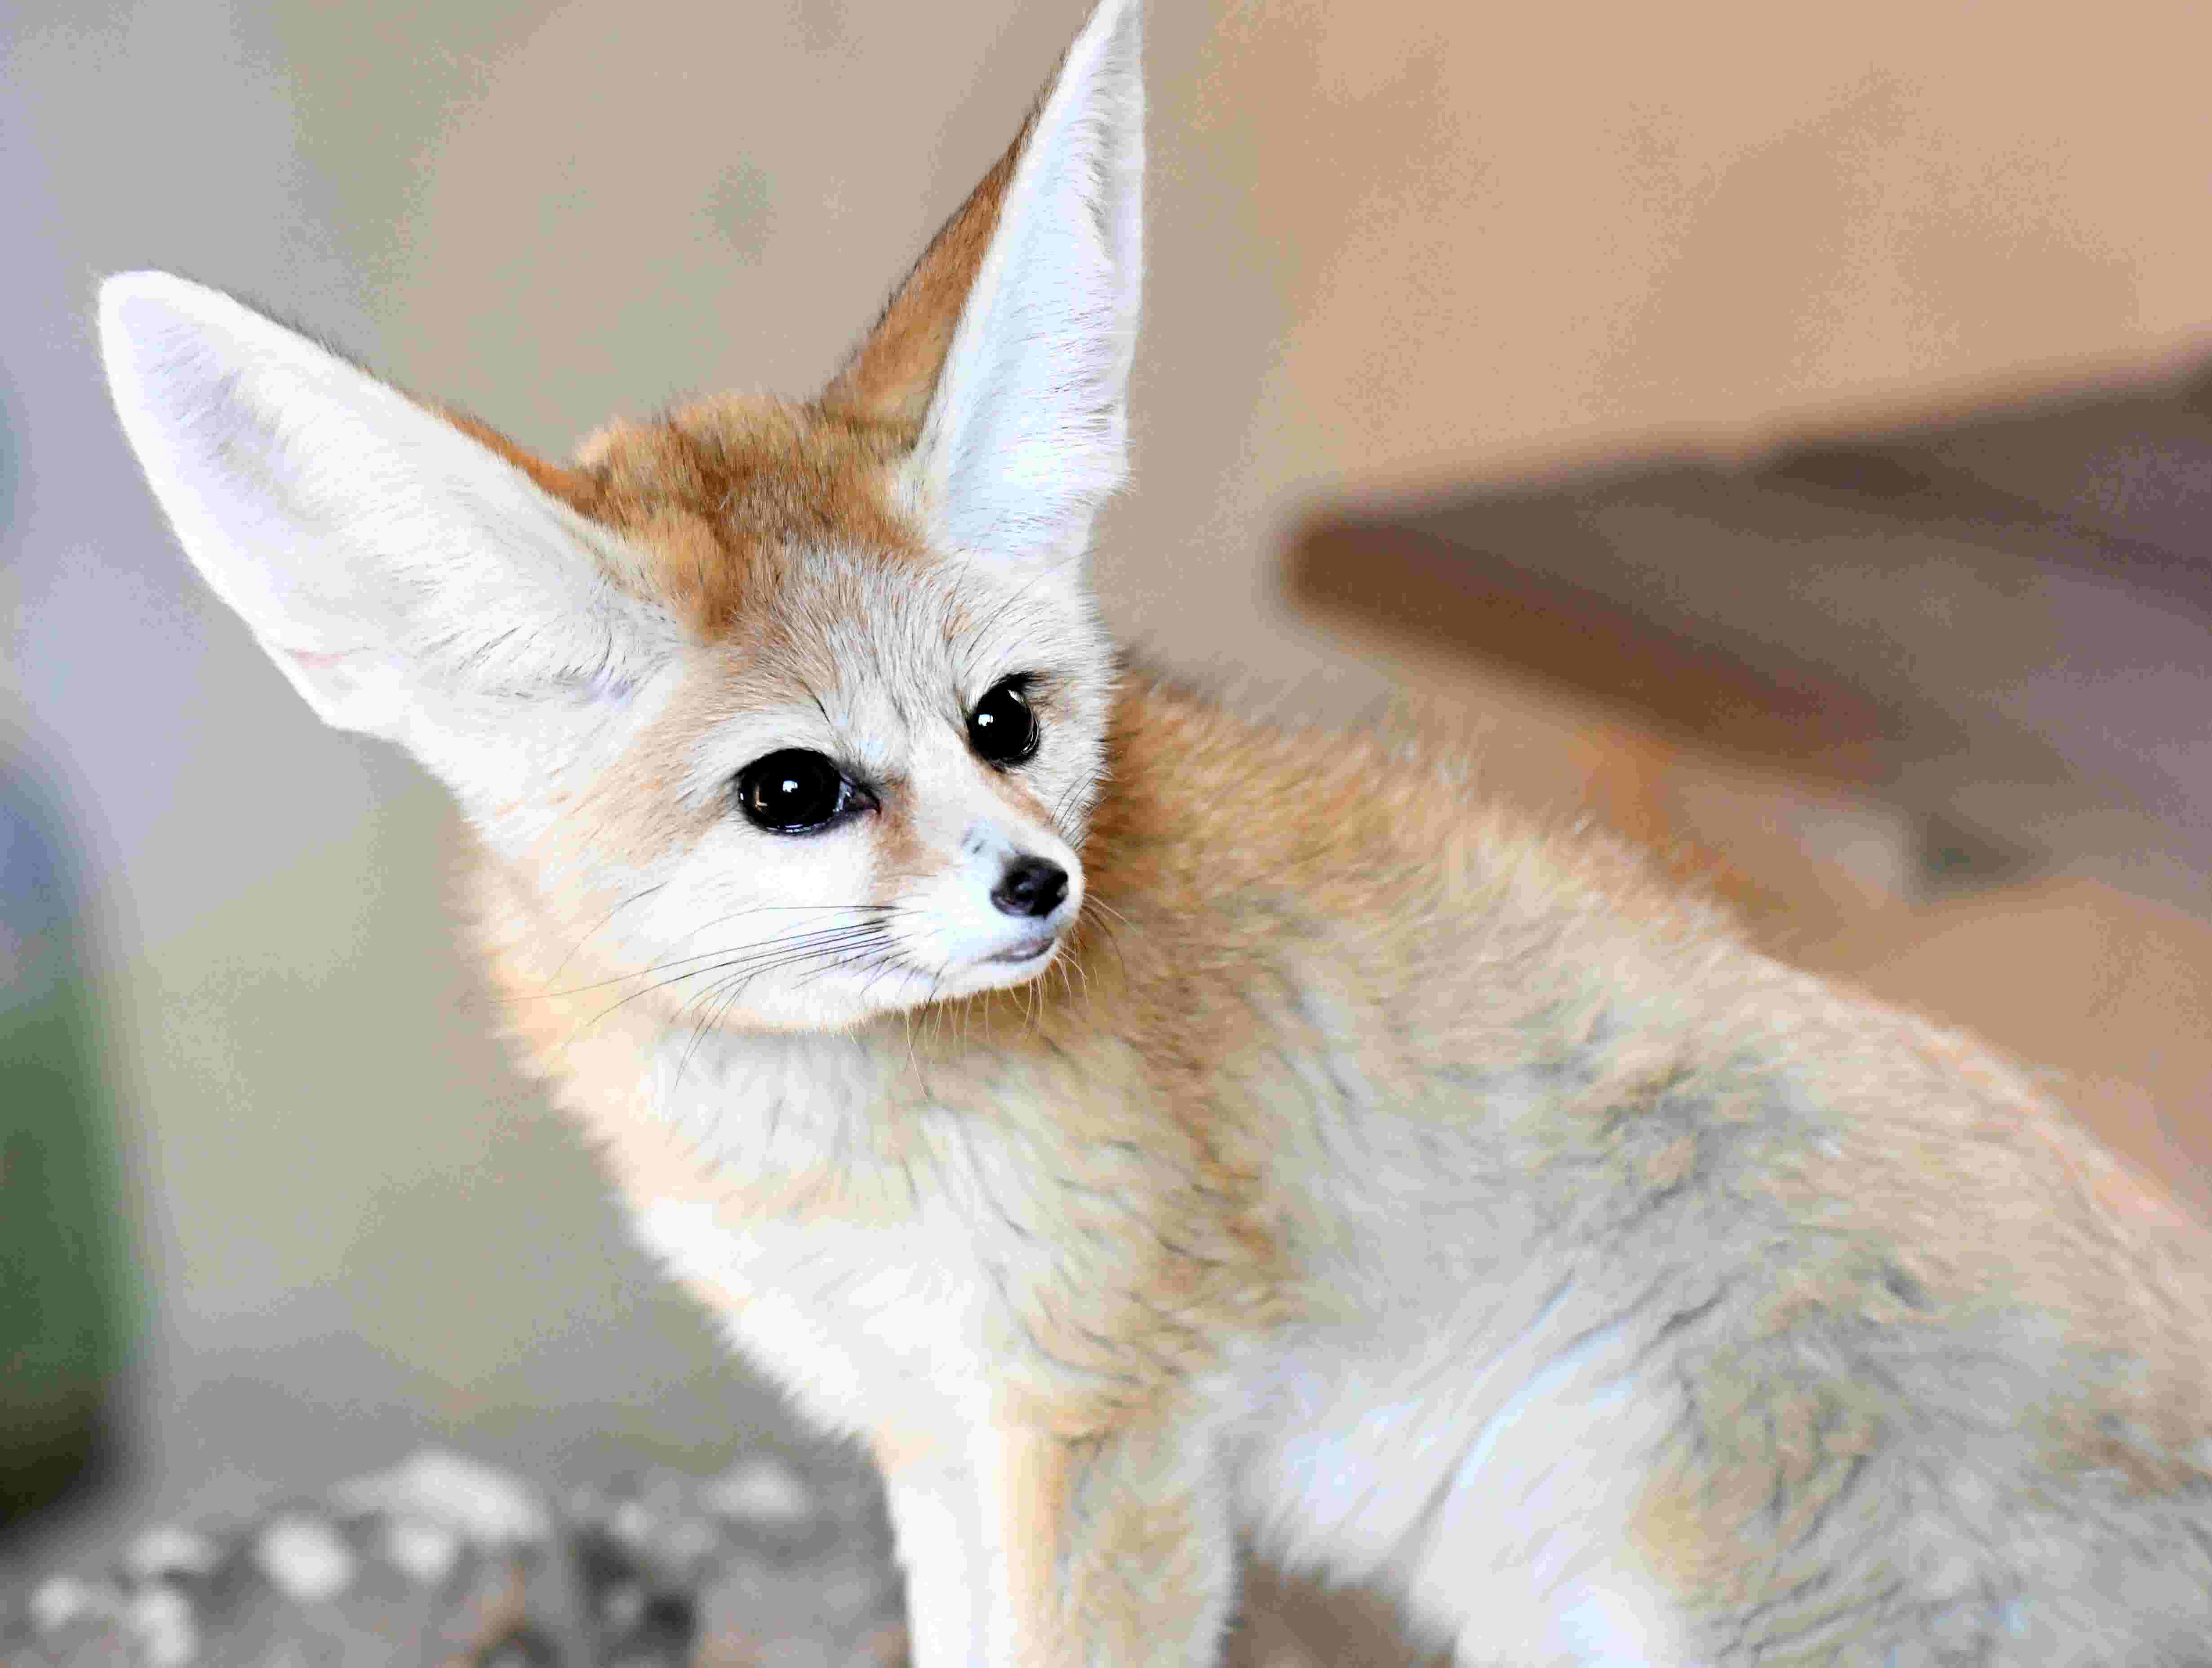 Fennec foxes arrive at Hattiesburg Zoo